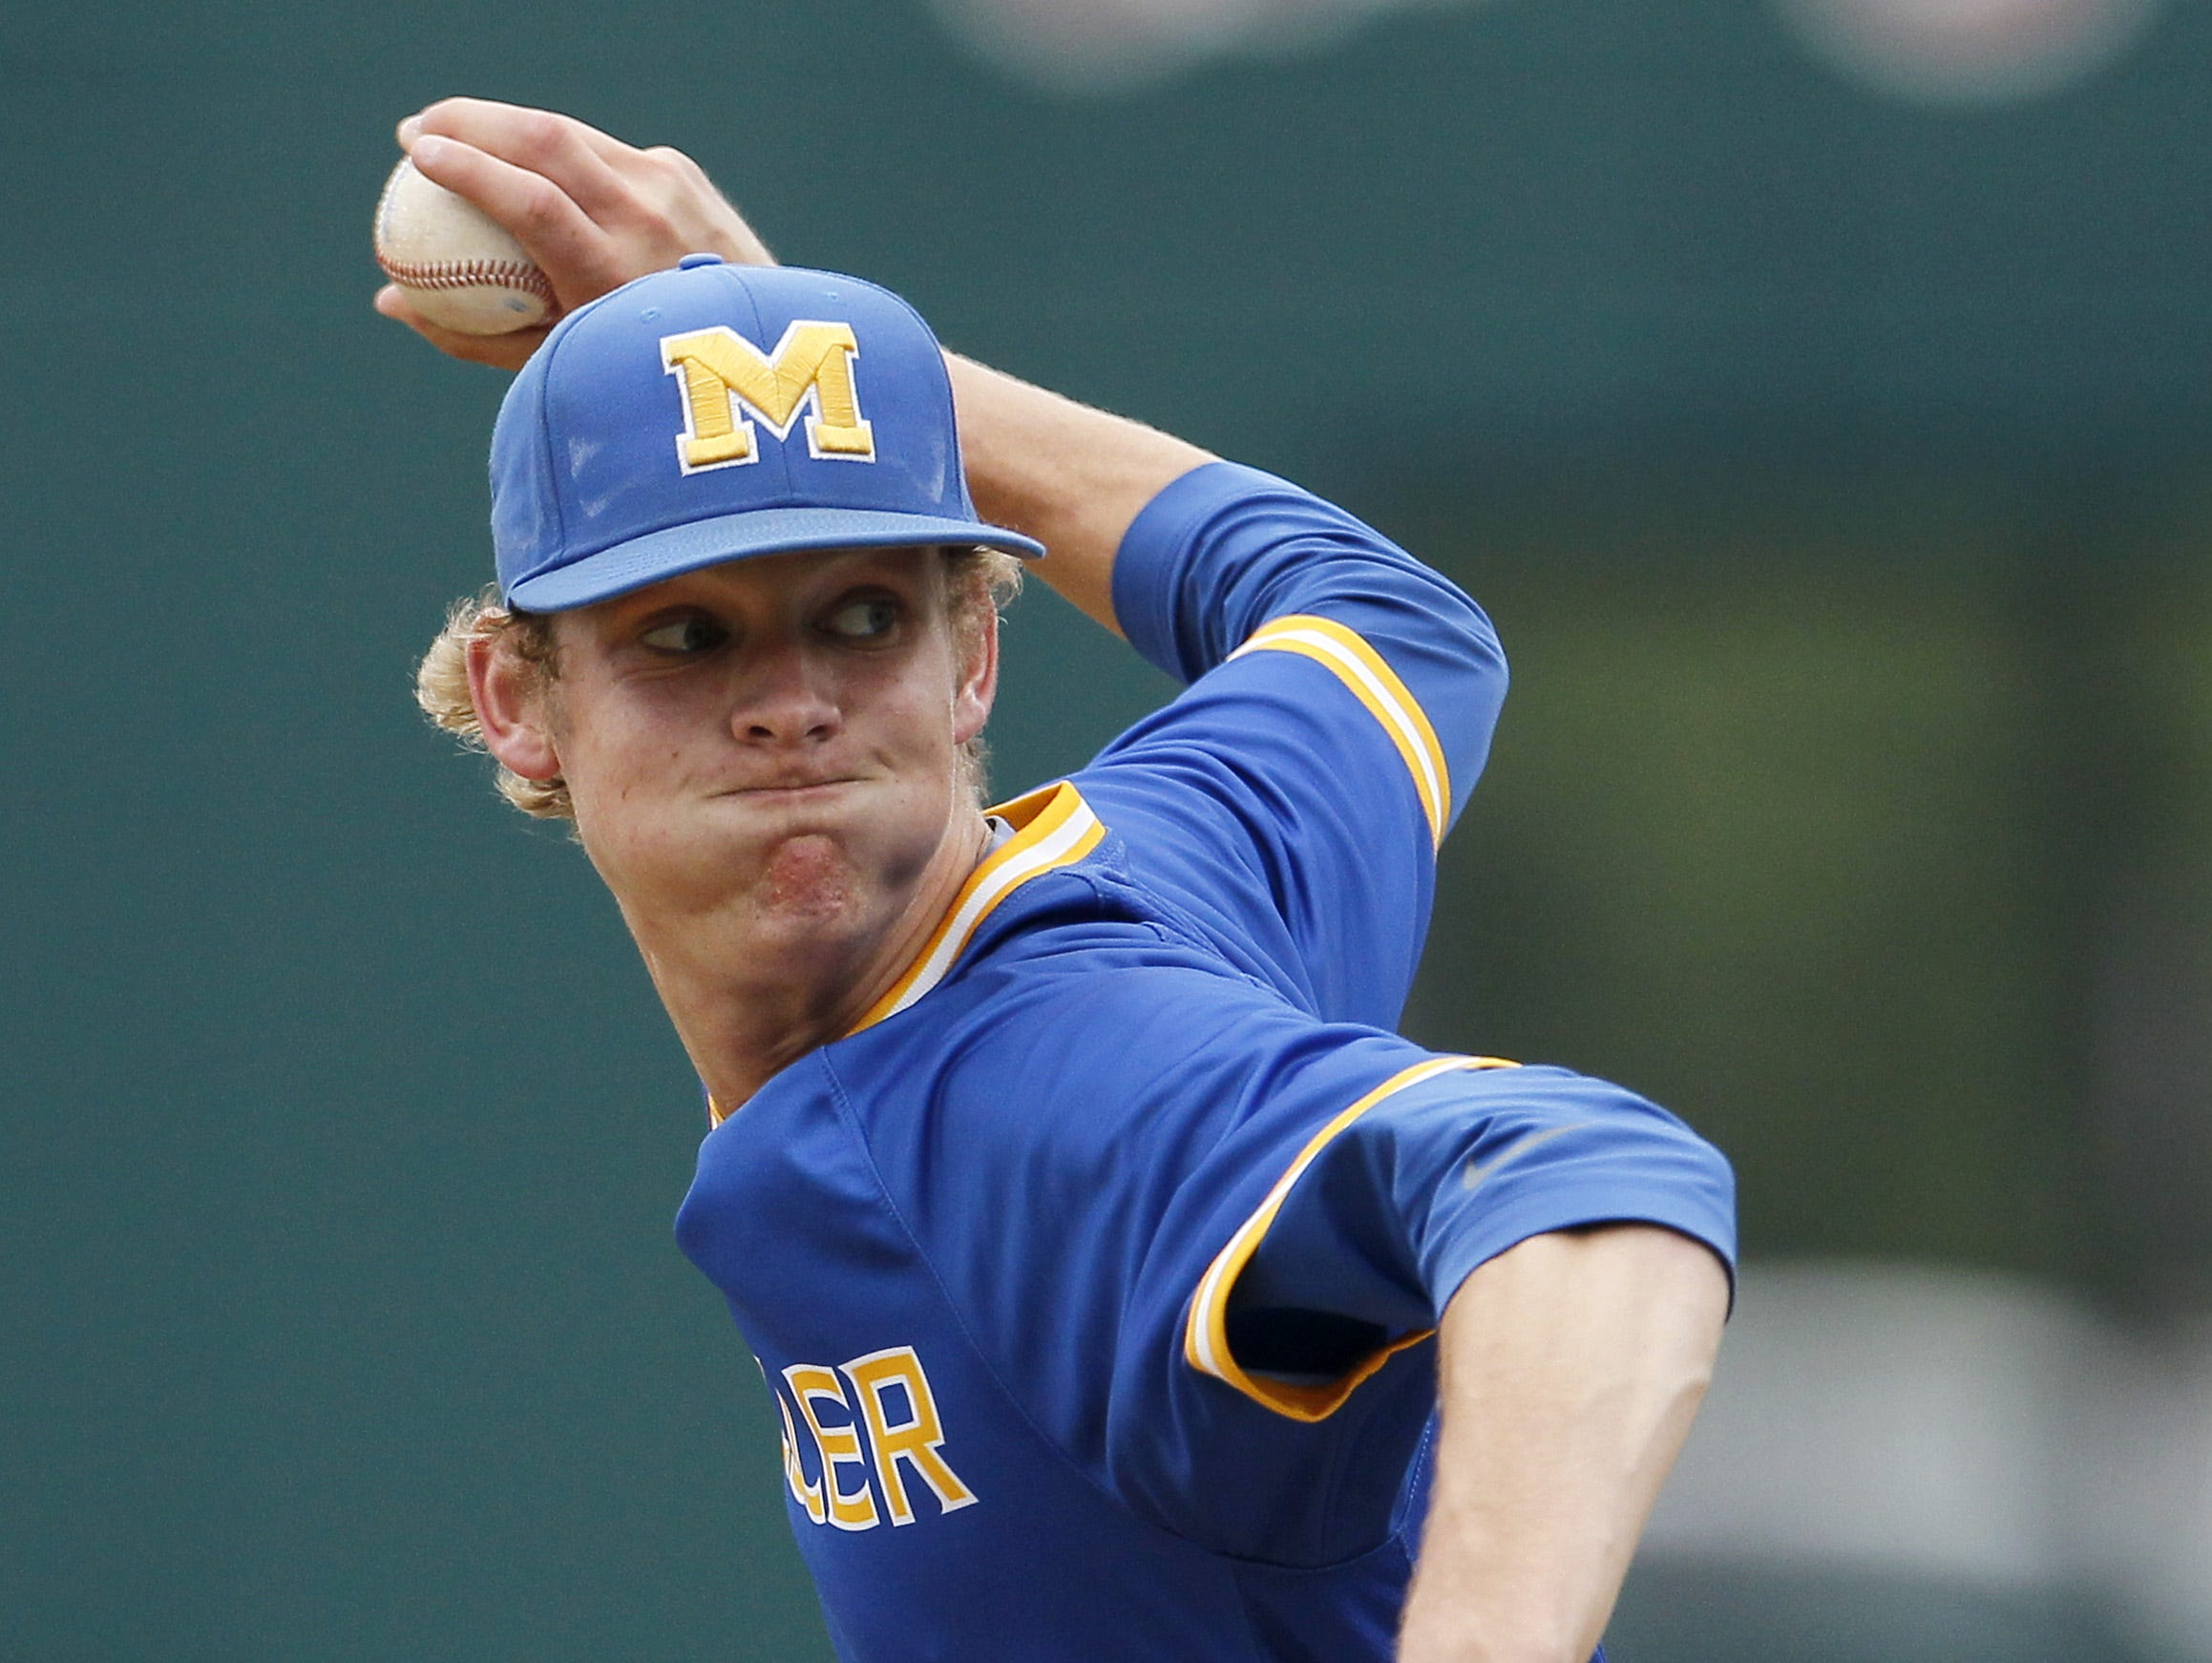 Moeller senior Grant Macciocchi (1) delivers a pitch in the bottom of the fourth inning.